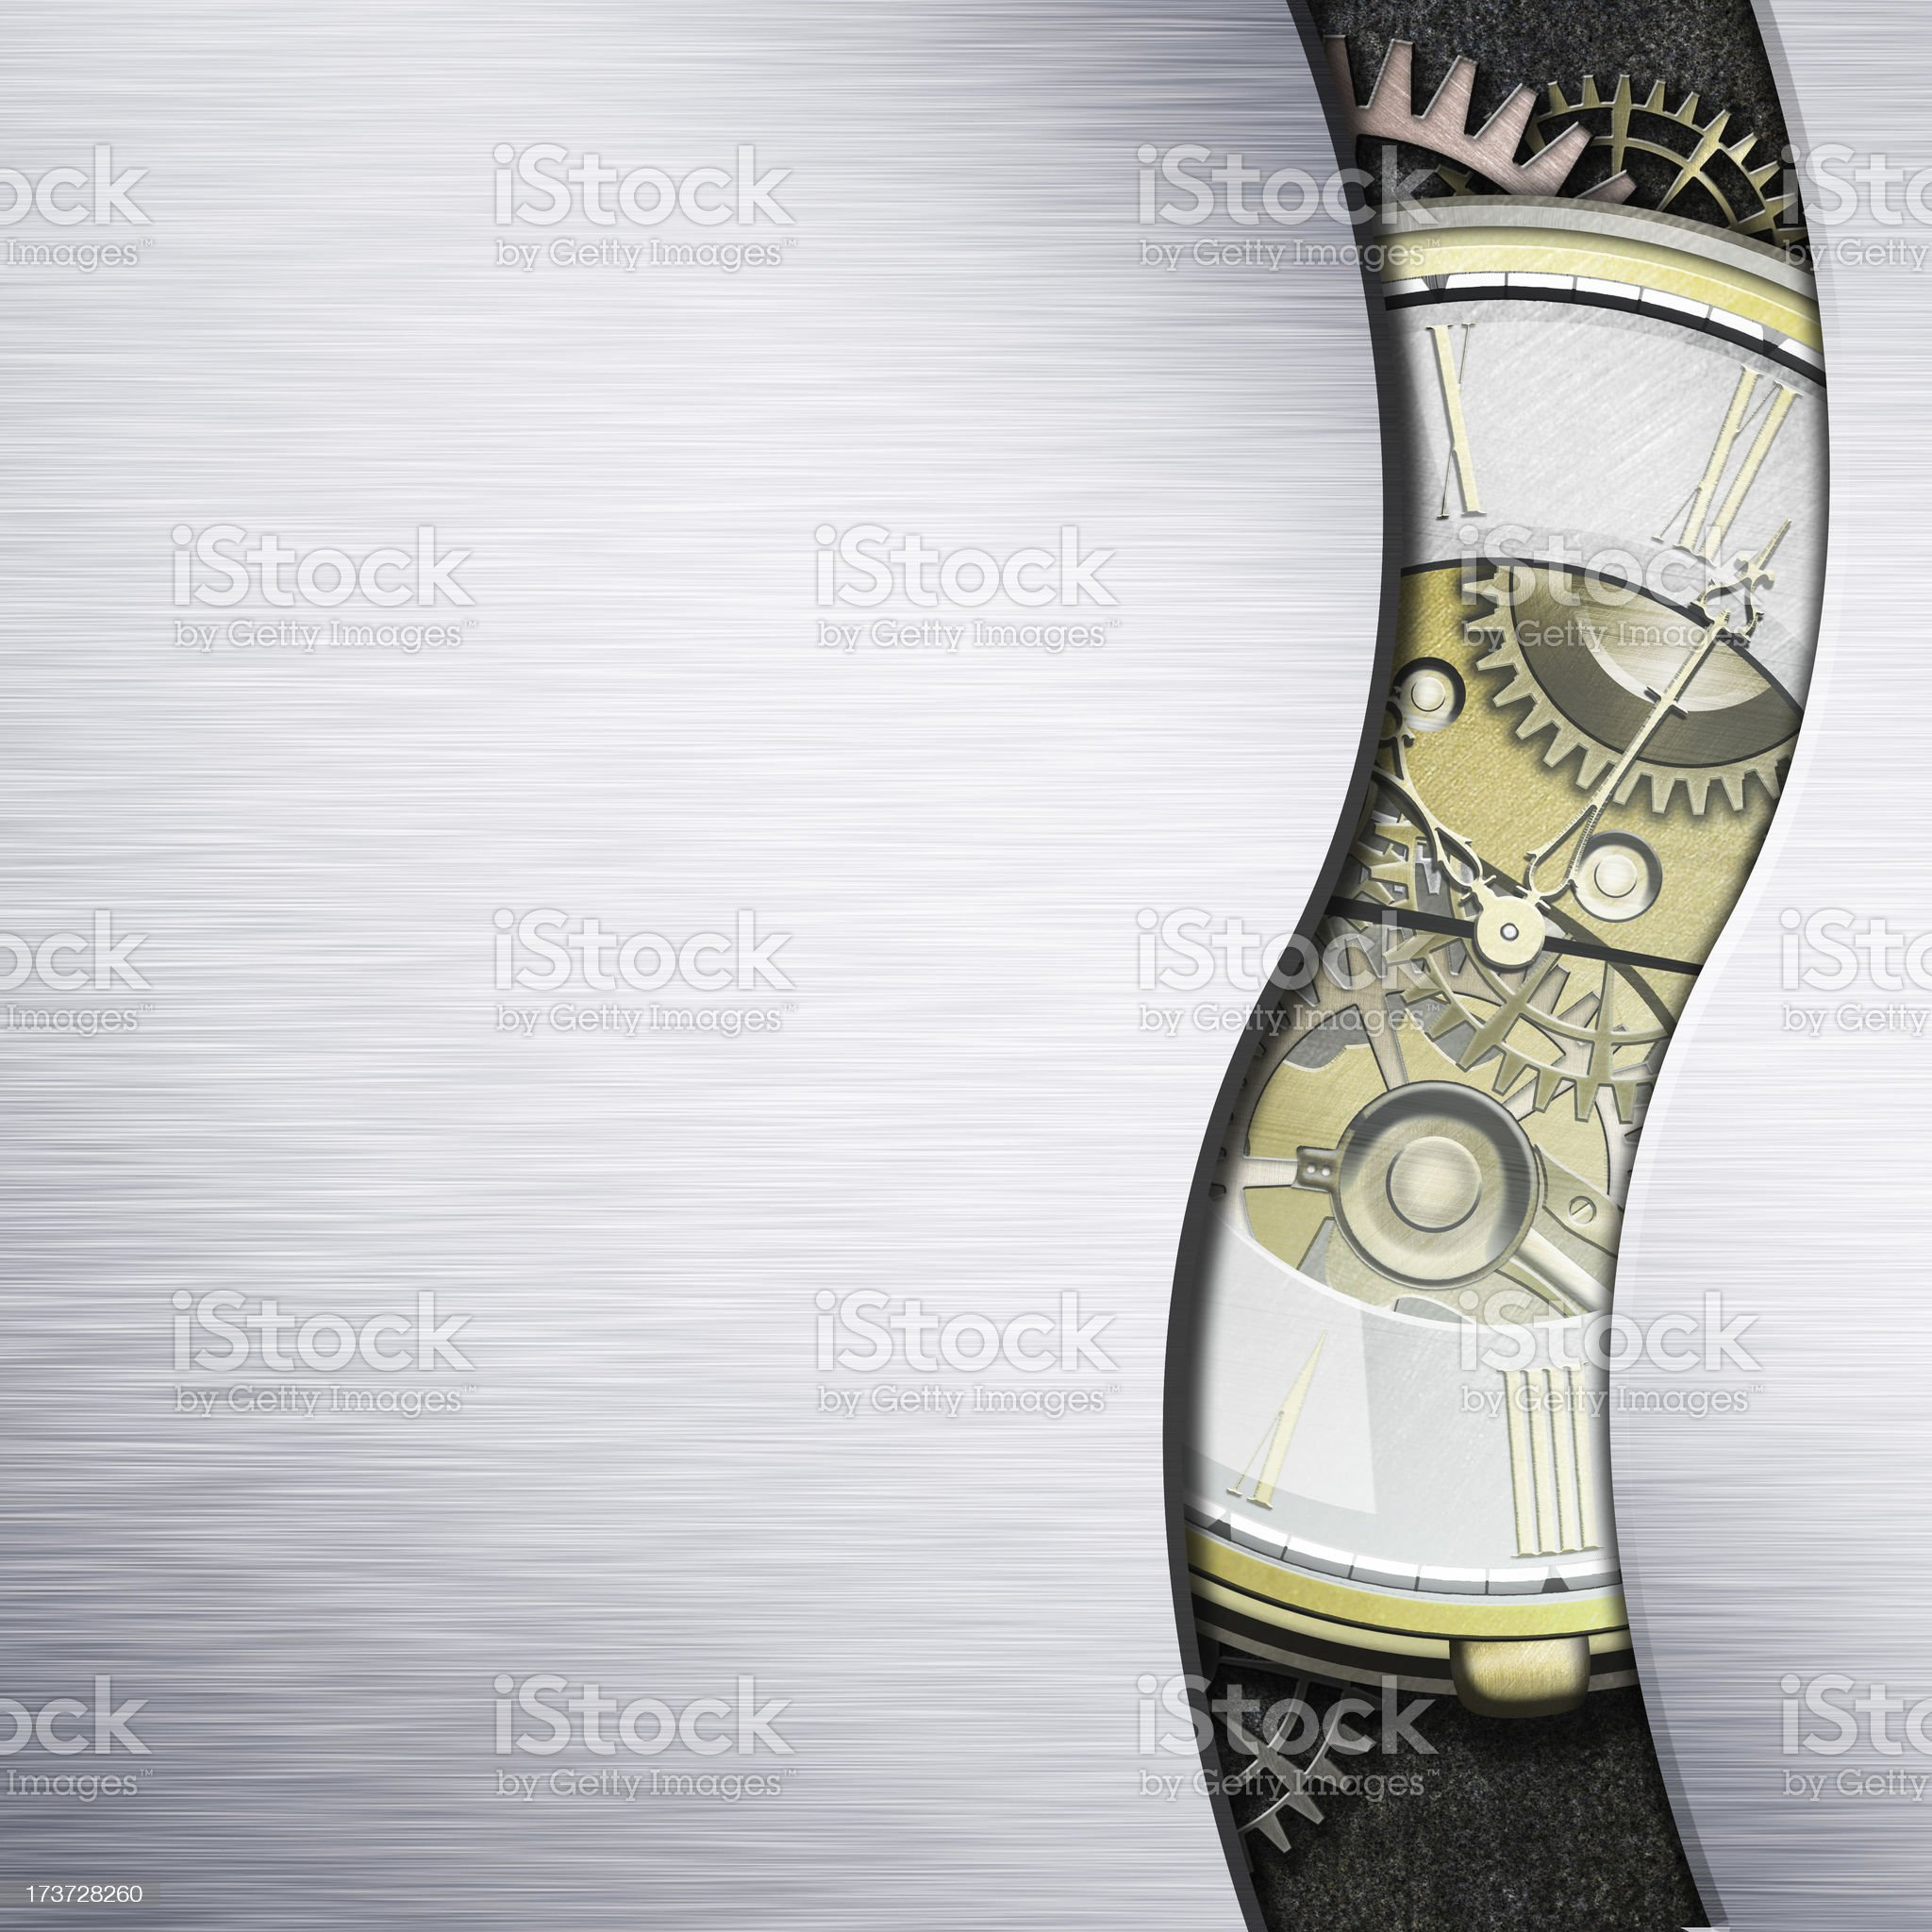 Watch with exposed mechanism showing wheels and cogs royalty-free stock photo